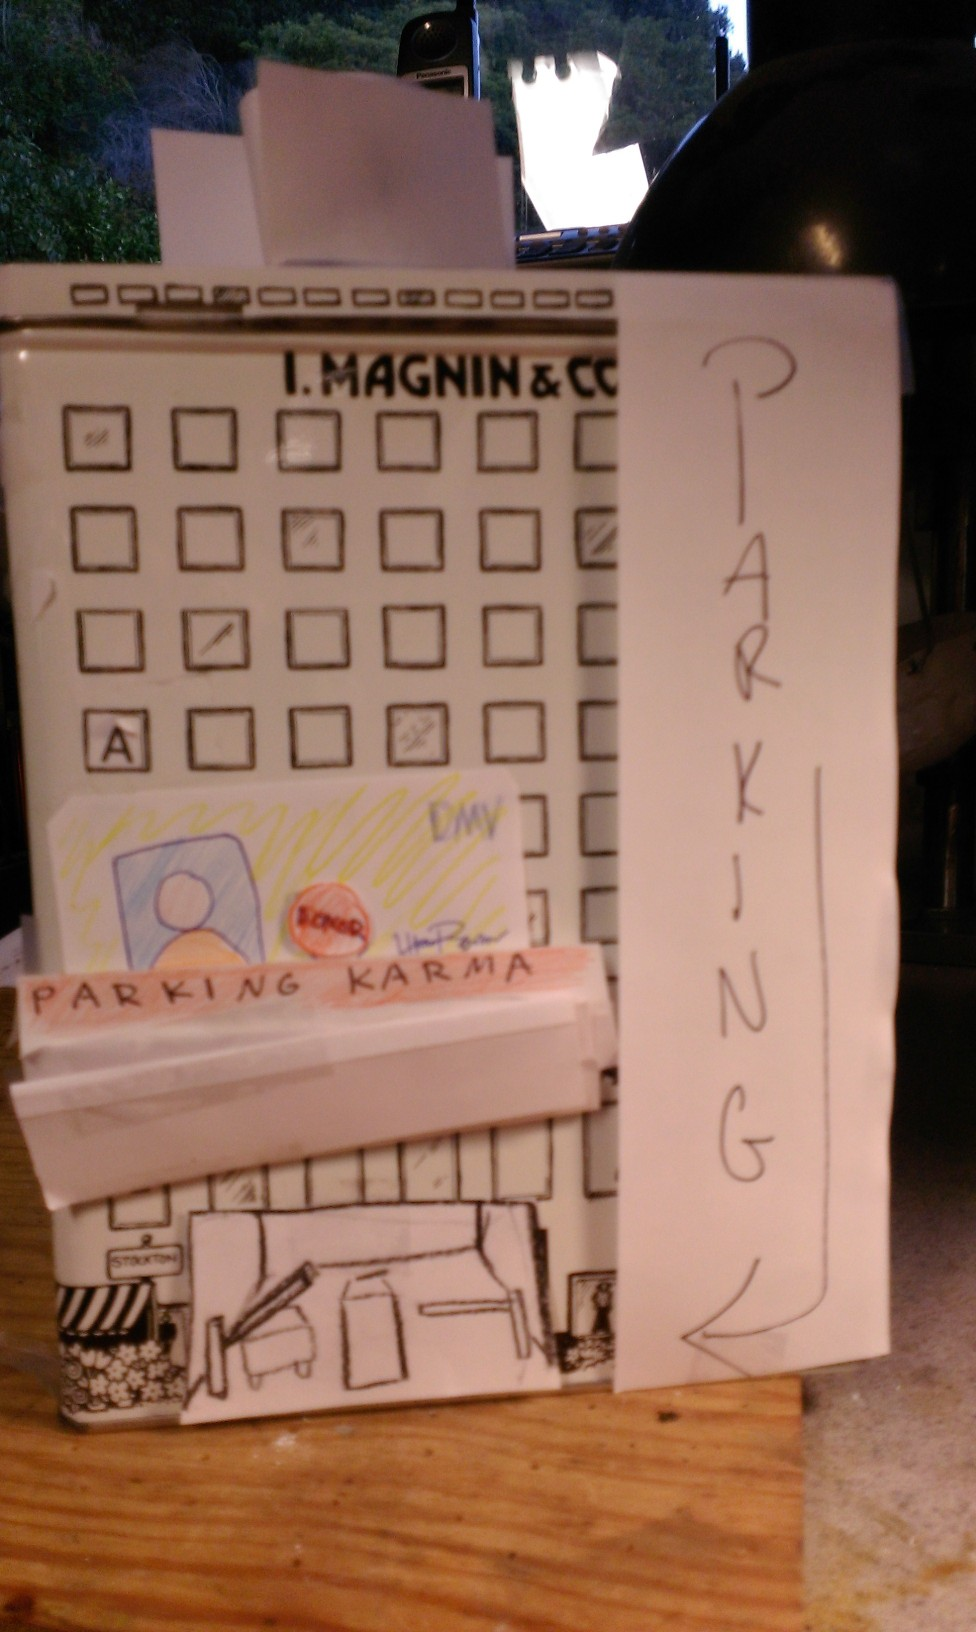 Parking Karma sketch and parking sign all in paper